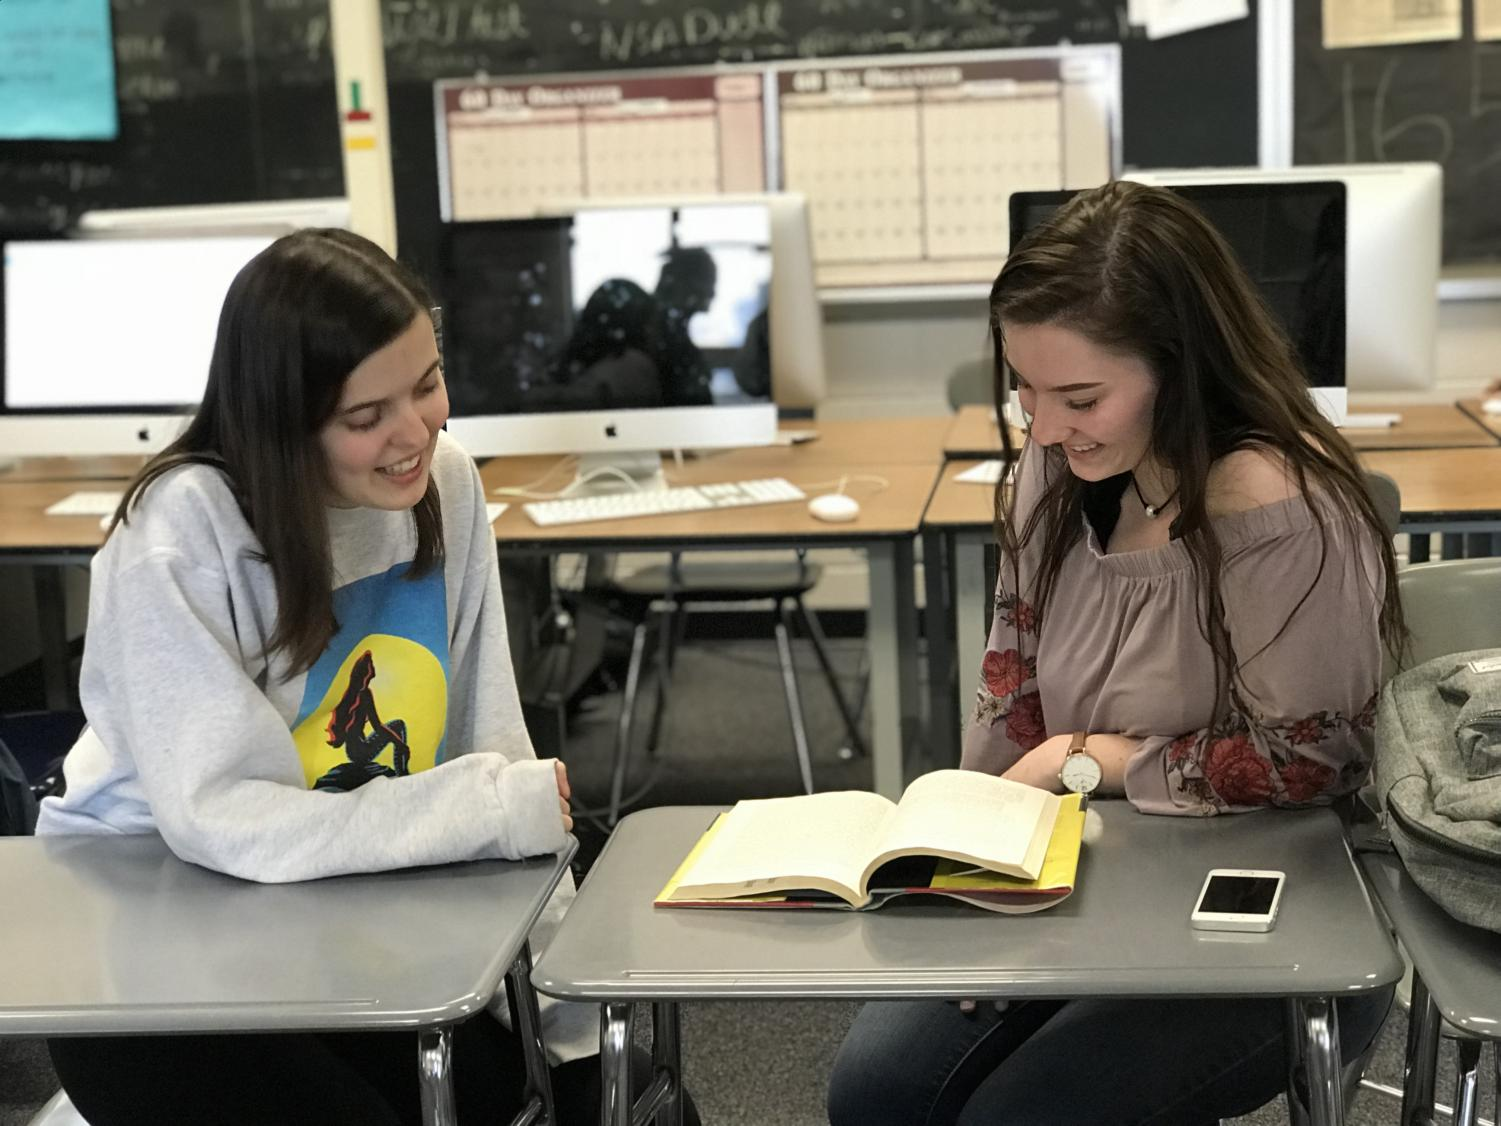 Jane Hilger and Savannah Jackson discuss a book during some free time.